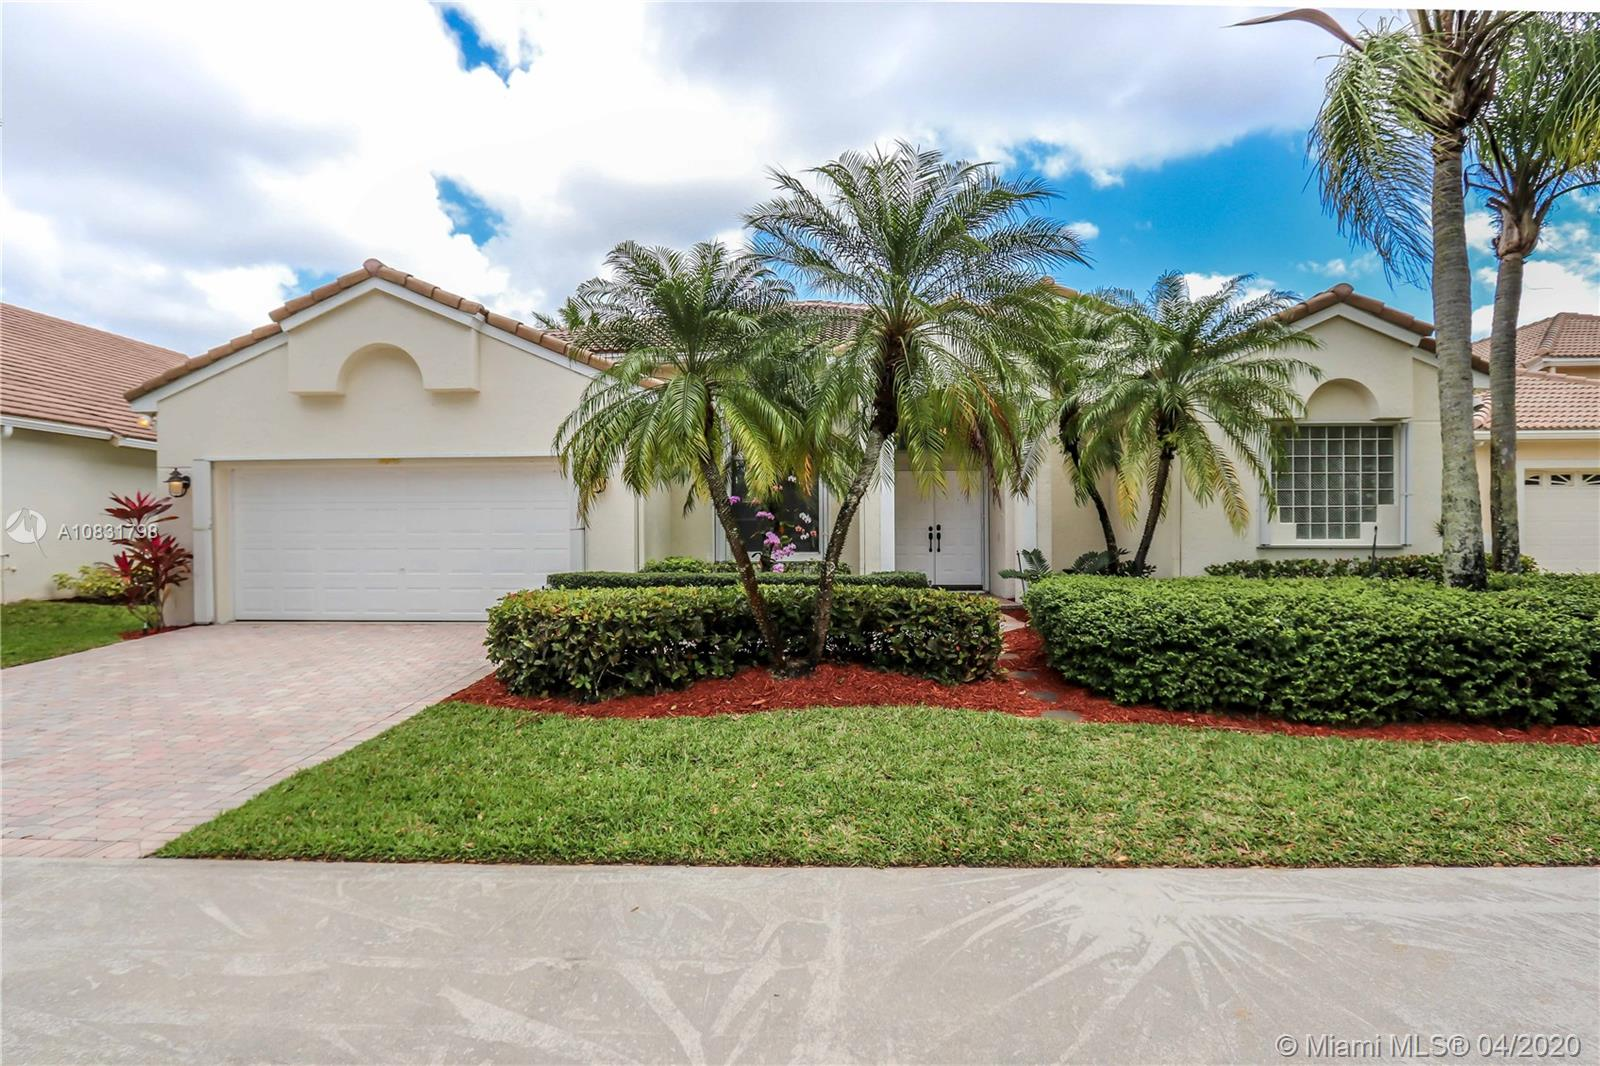 """This gorgeous one story home has 4 Bedroom ,3 bath and 2 car garage. In The Prestigious Community of Weston Hills Country Club. Very spacious interior floor plan. High ceiling, accordion hurricane shutters, and NEW ROOF (done 6 years ago). Without mention, stunning relaxing view of the lake. IDEAL LOCATION, close to community gate with easy access, and in a traffic less driveway. Near all highways, hospital and """"A"""" rated schools. . Very near, Weston town center, restaurants.  OWNER READY TO SELL. Weston Hills is a guard gated community. Resort style living within a Country club with golf course and Country Club membership is available."""